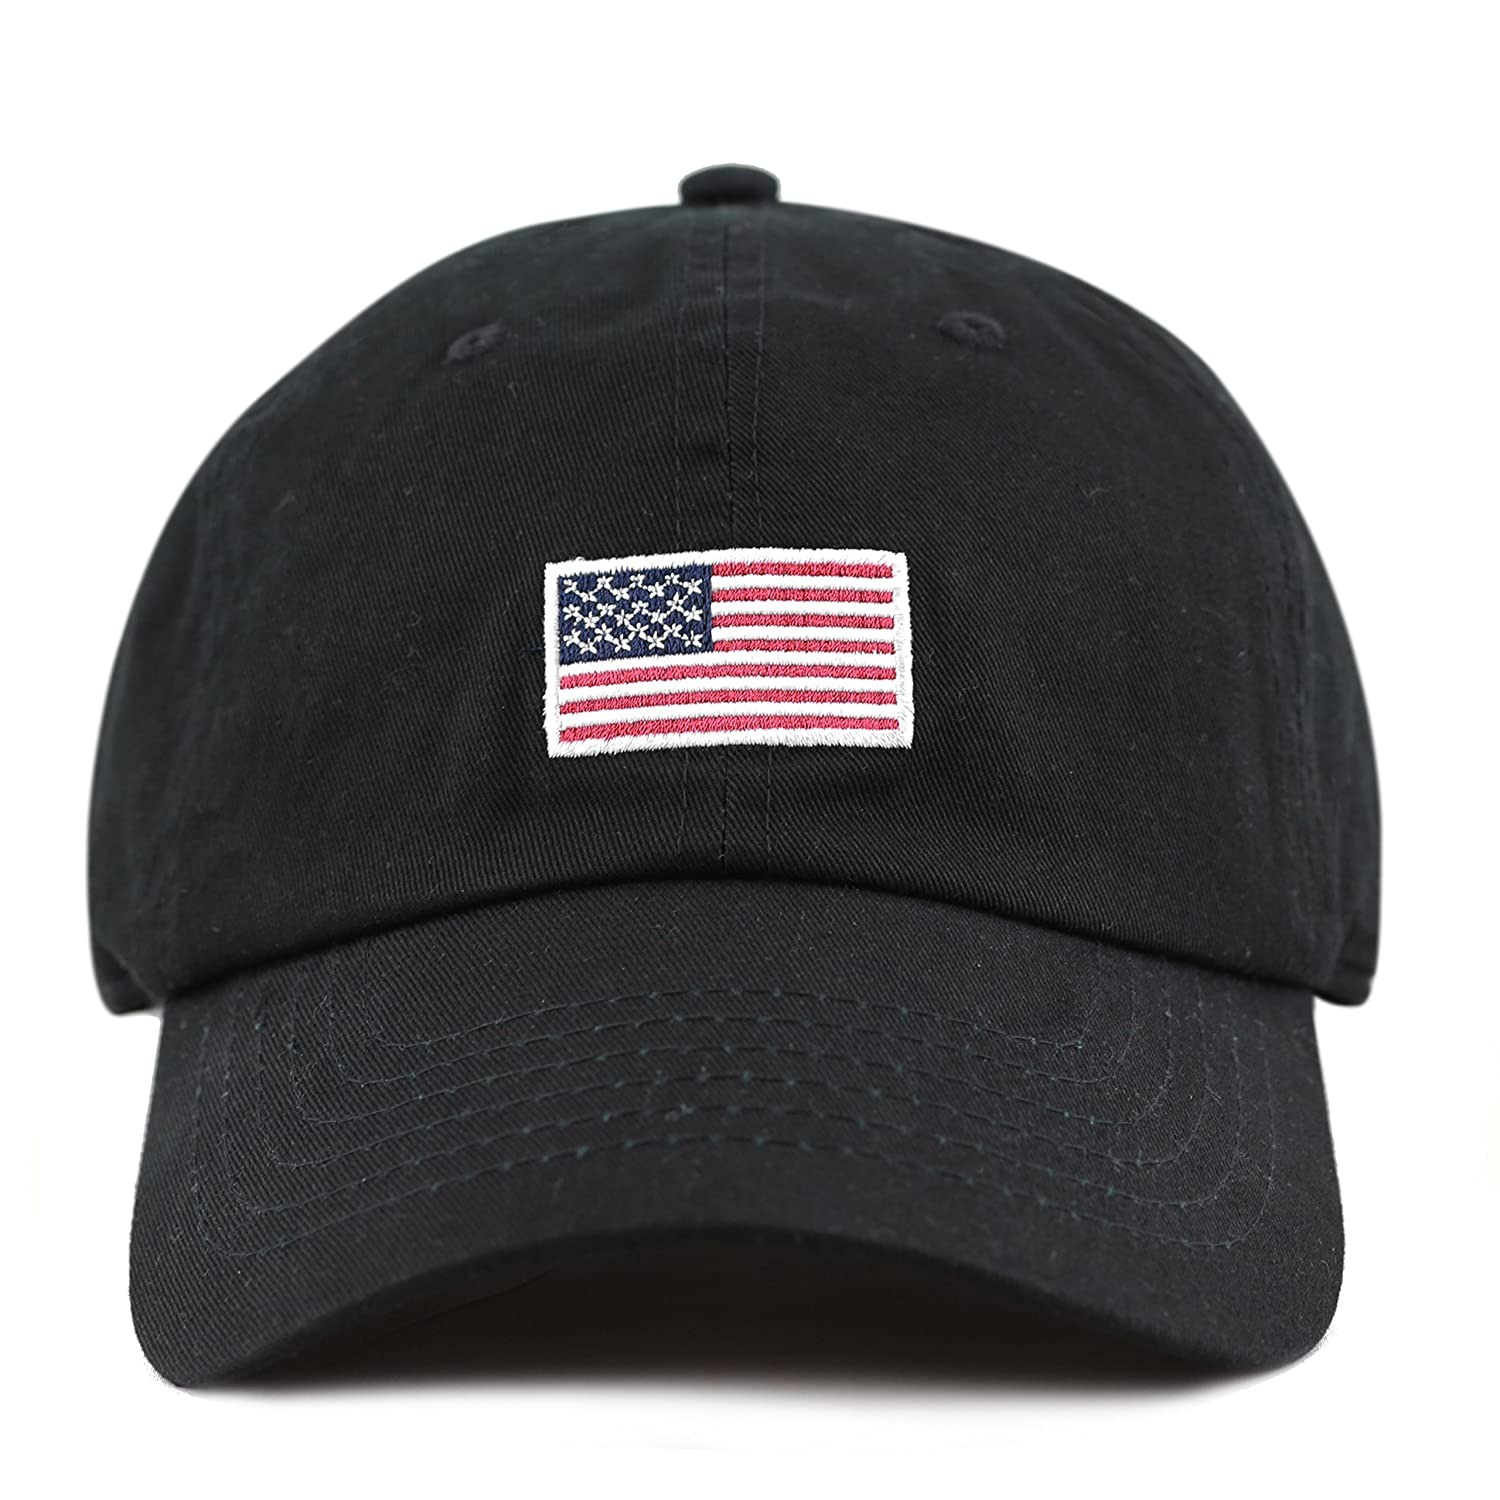 3b508d2381b THE HAT DEPOT 300n1405 USA Embroidery Cotton Cap (Flag-Black) at Amazon  Women s Clothing store